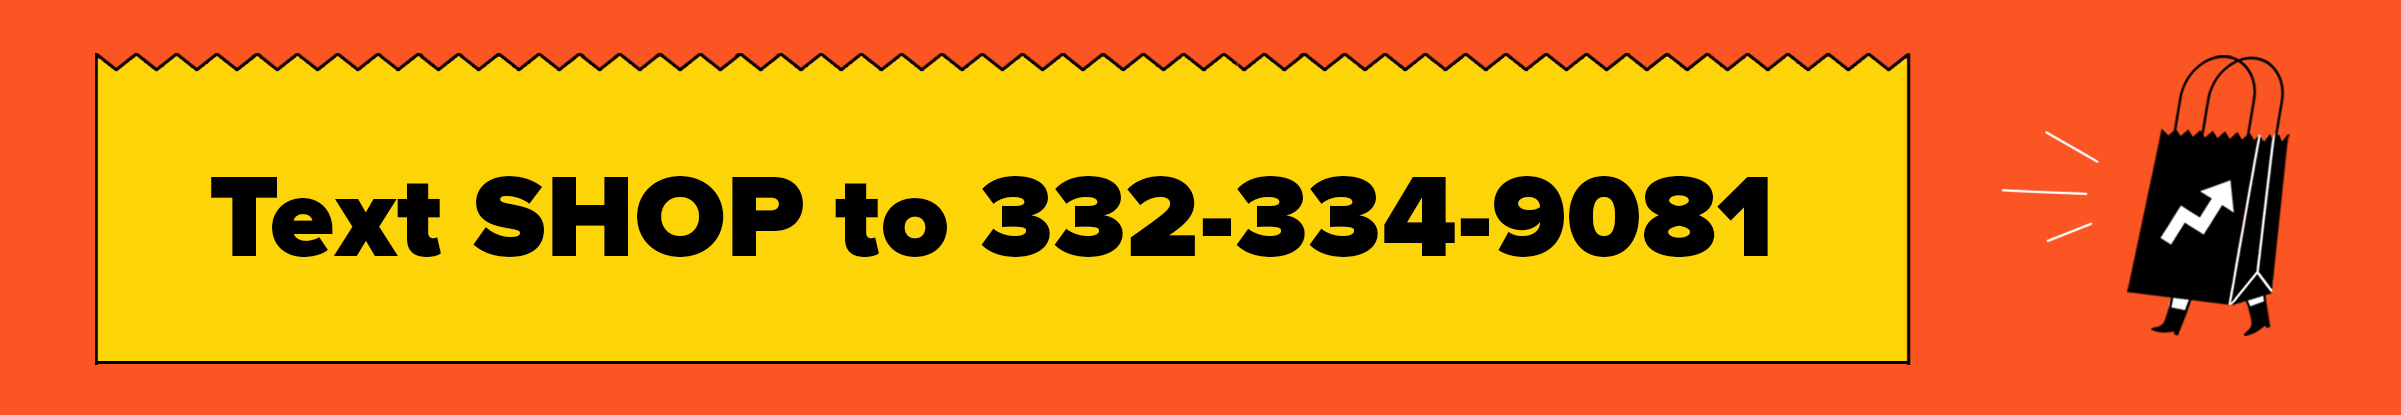 the number to text for BuzzFeed Shopping product recommendations: 332-334-9081